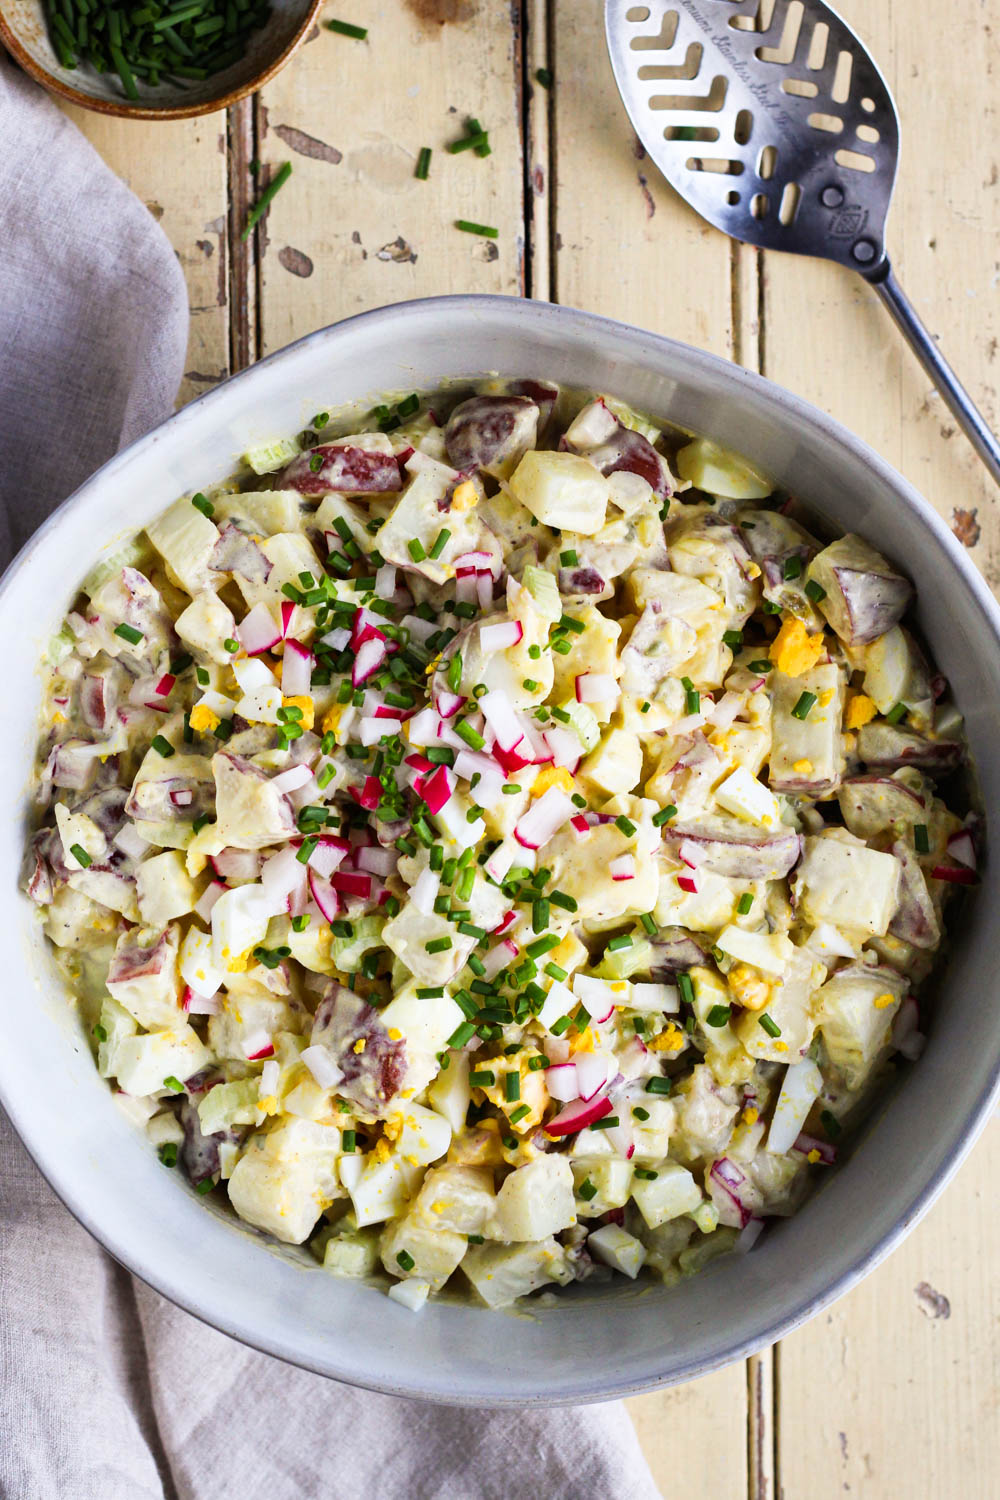 Potato salad in a serving bowl